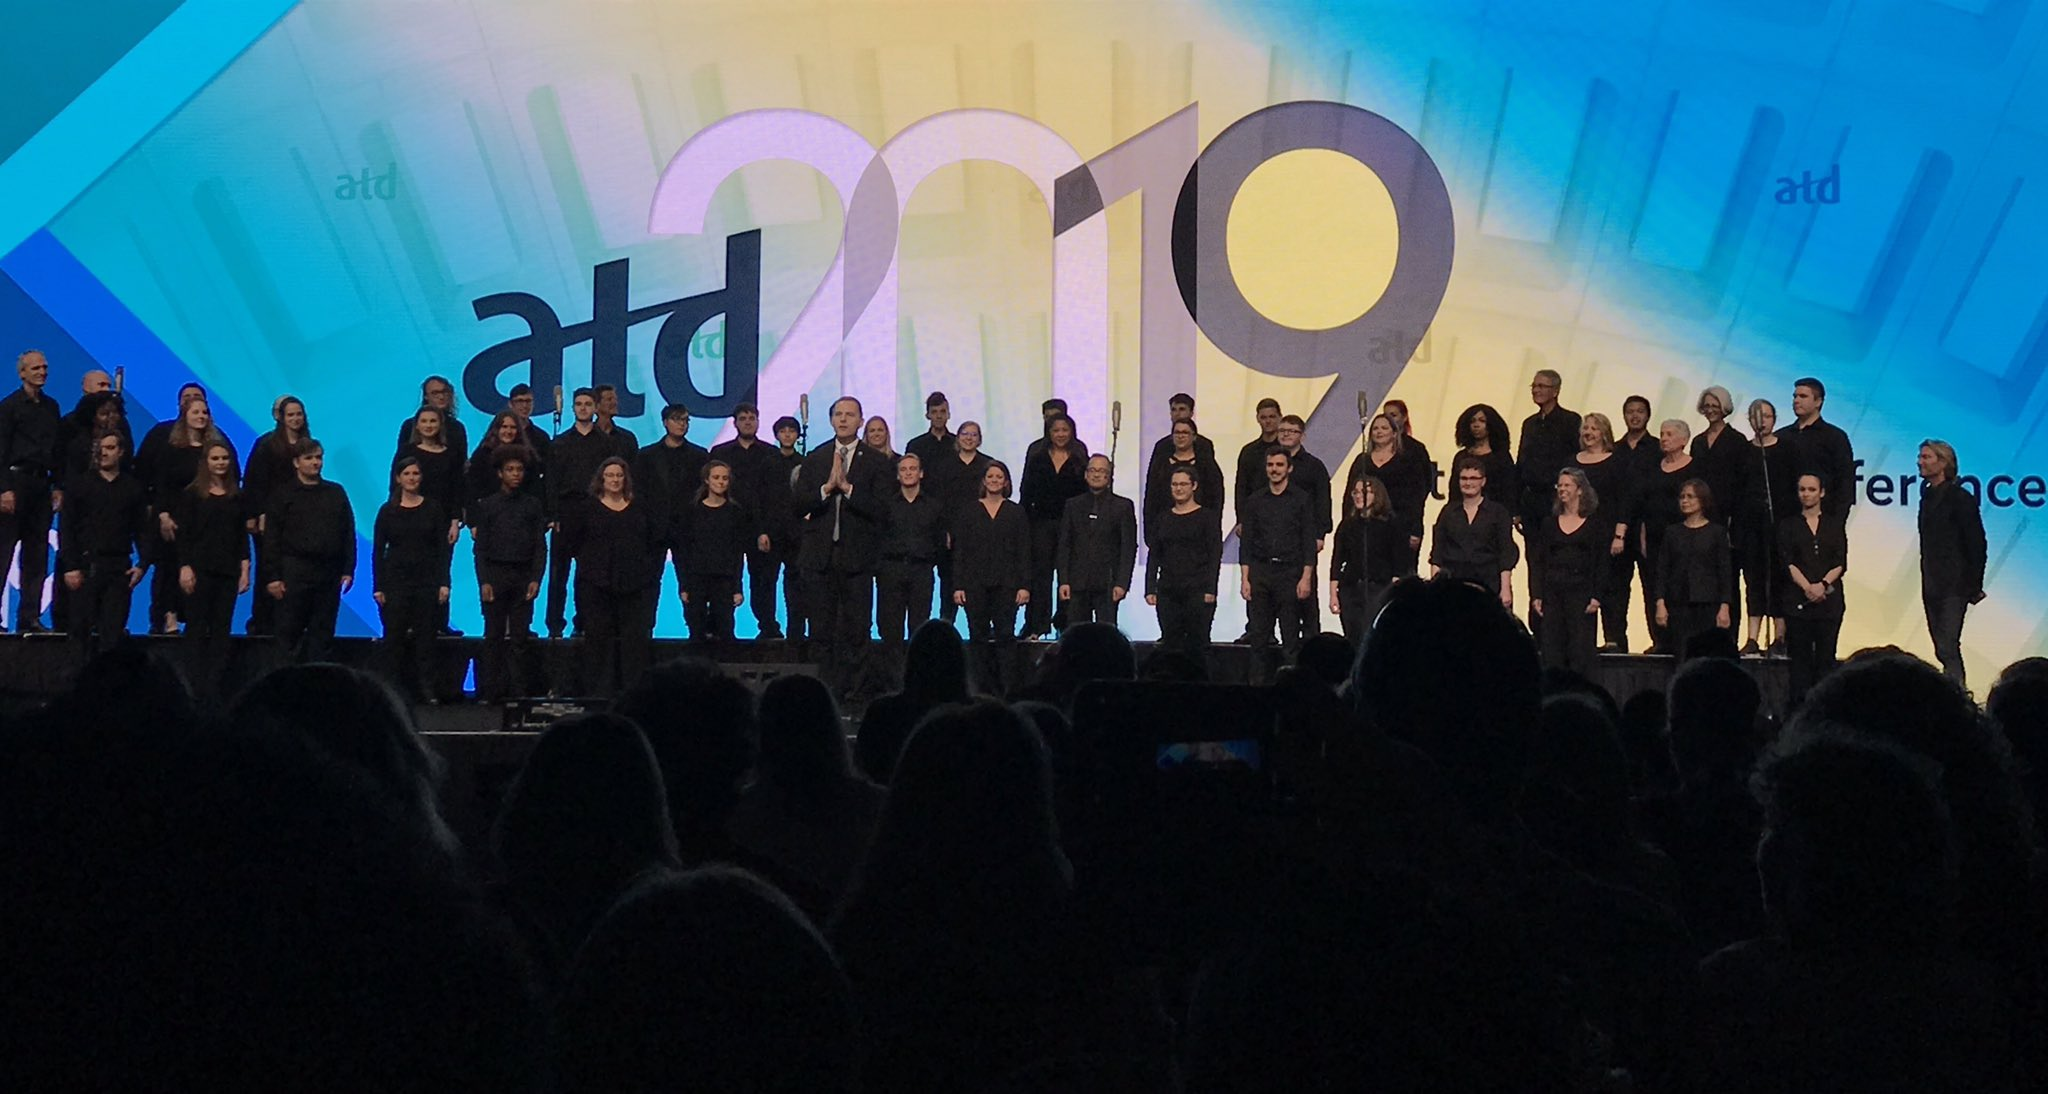 """""""I find that technology tells us who we want to be and art tells us who we are."""" -@EricWhitacre  #ATD2019 #ATDchapters https://t.co/D6BigdicHM"""